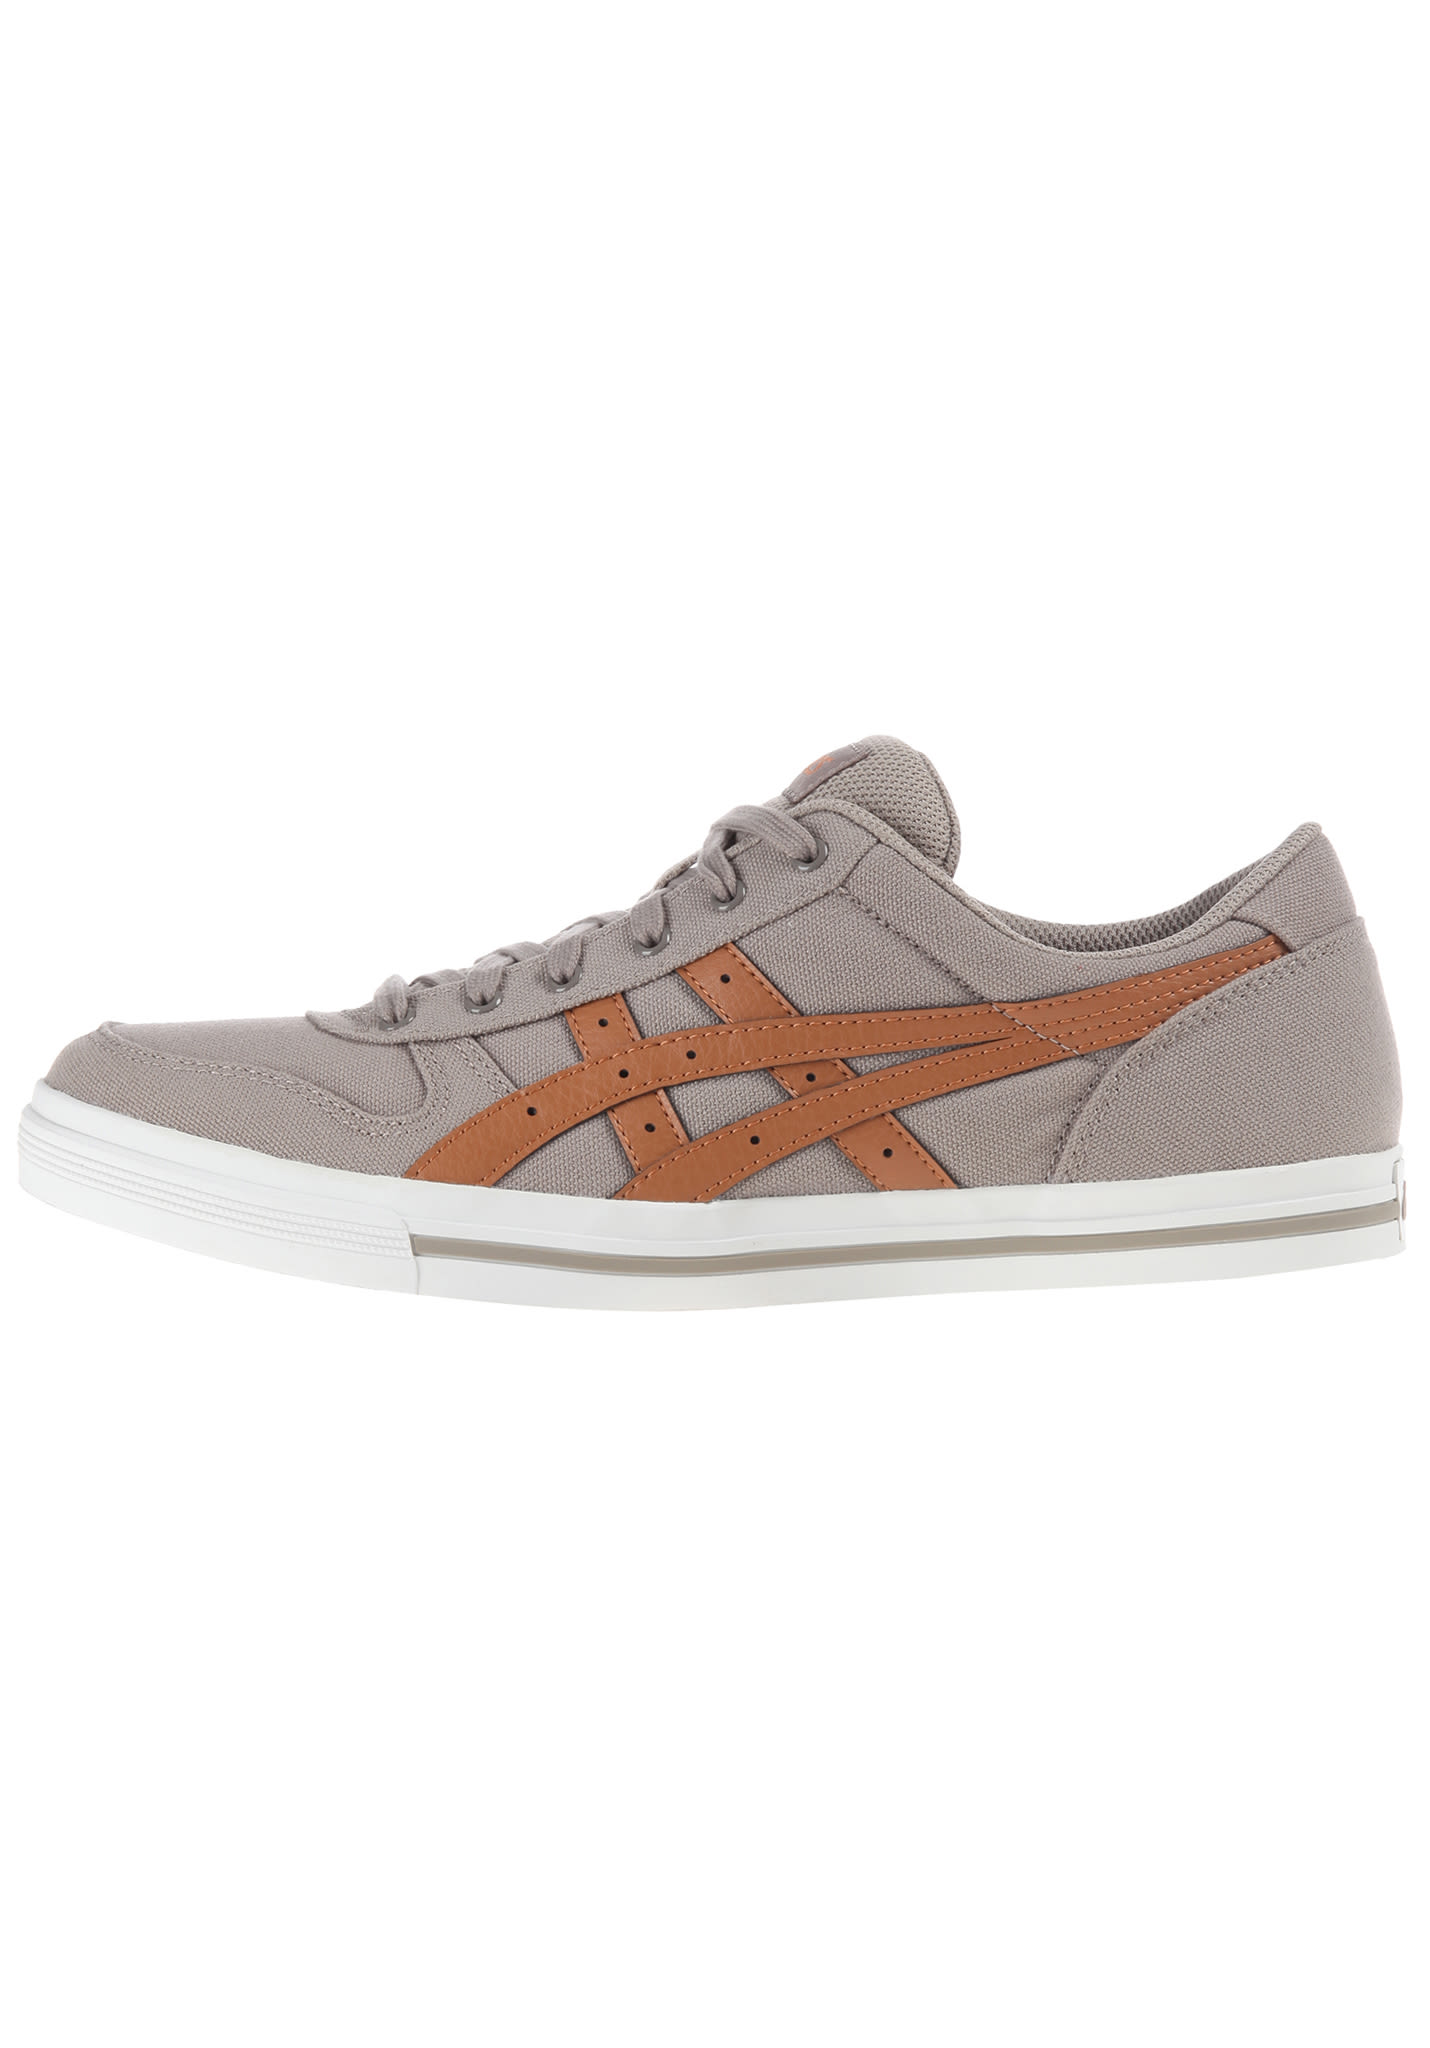 2958906f97a Asics Tiger Aaron - Sneakers voor Heren - Grijs - Planet Sports